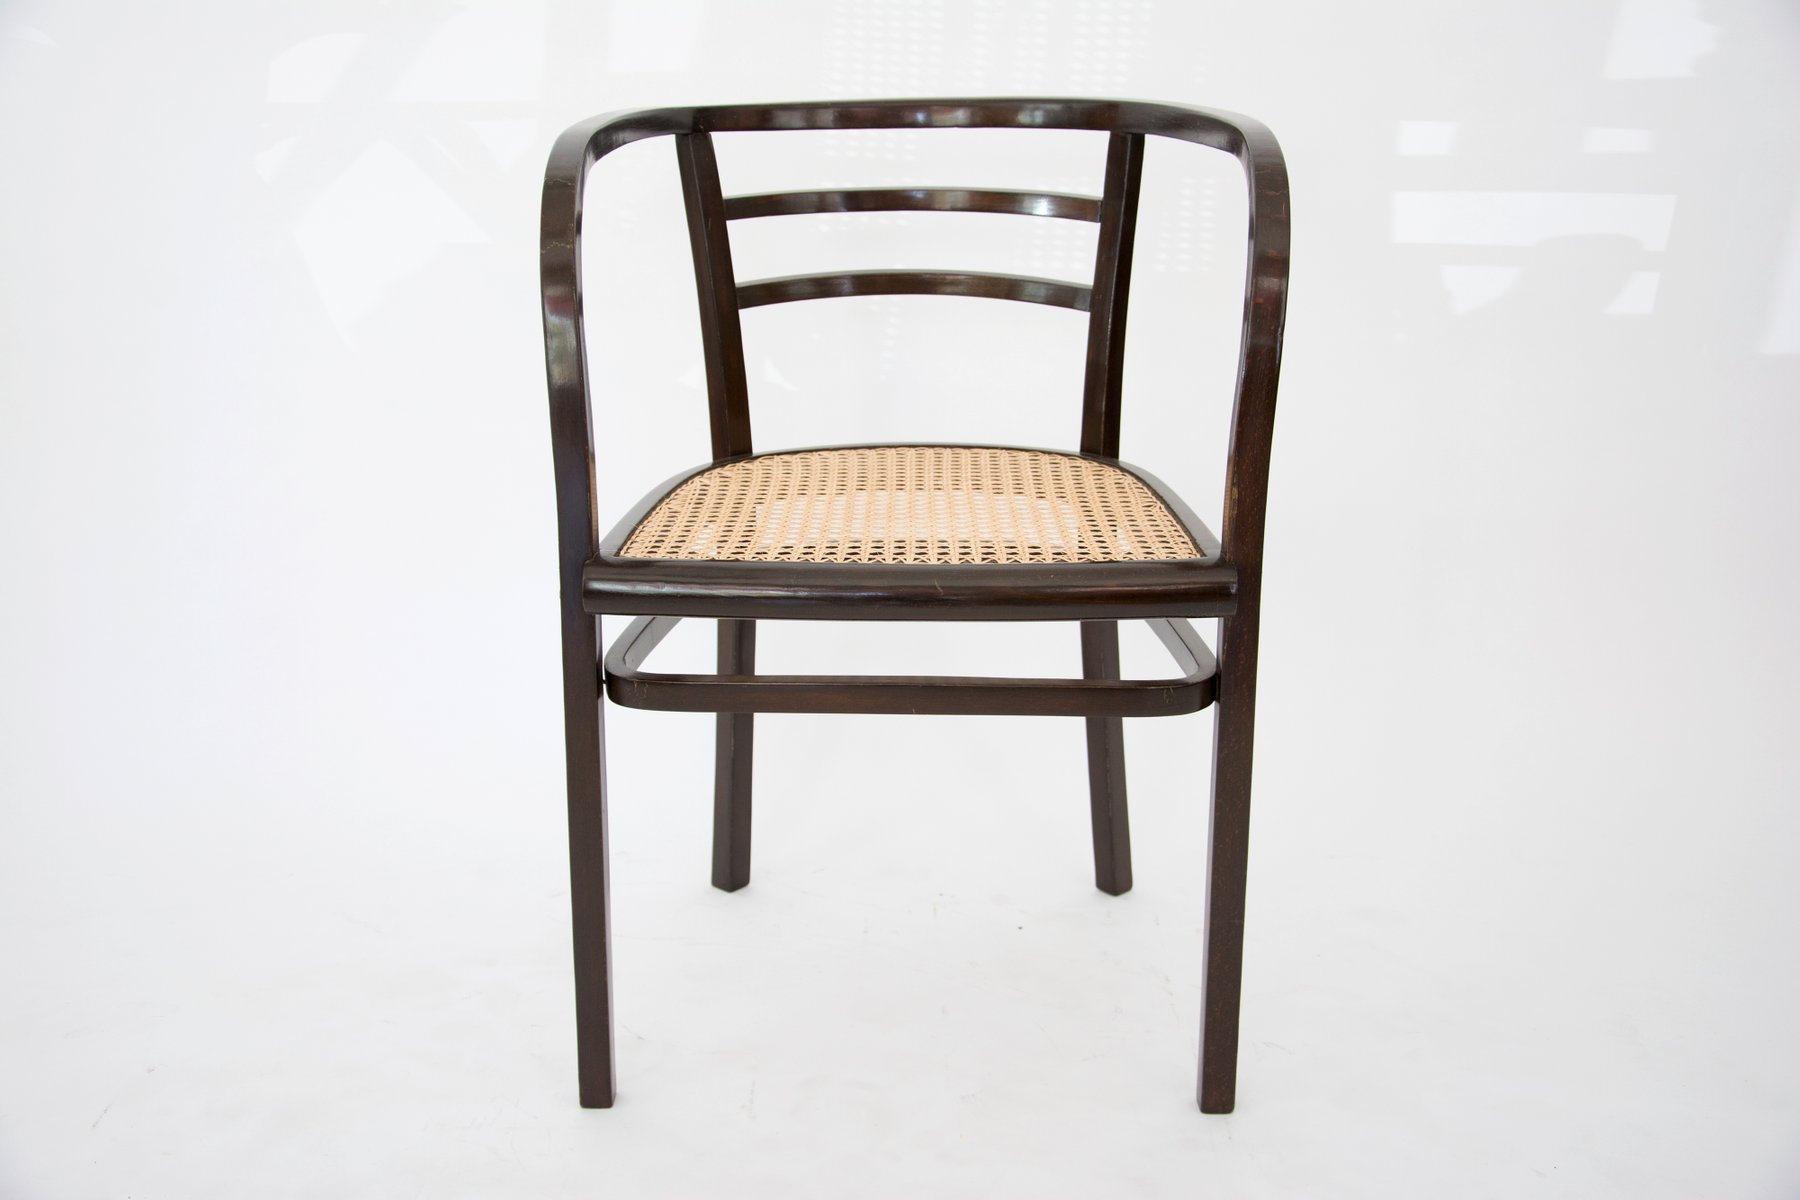 Lovely Armchair By Otto Wagner For Thonet, 1905 For Sale At Pamono